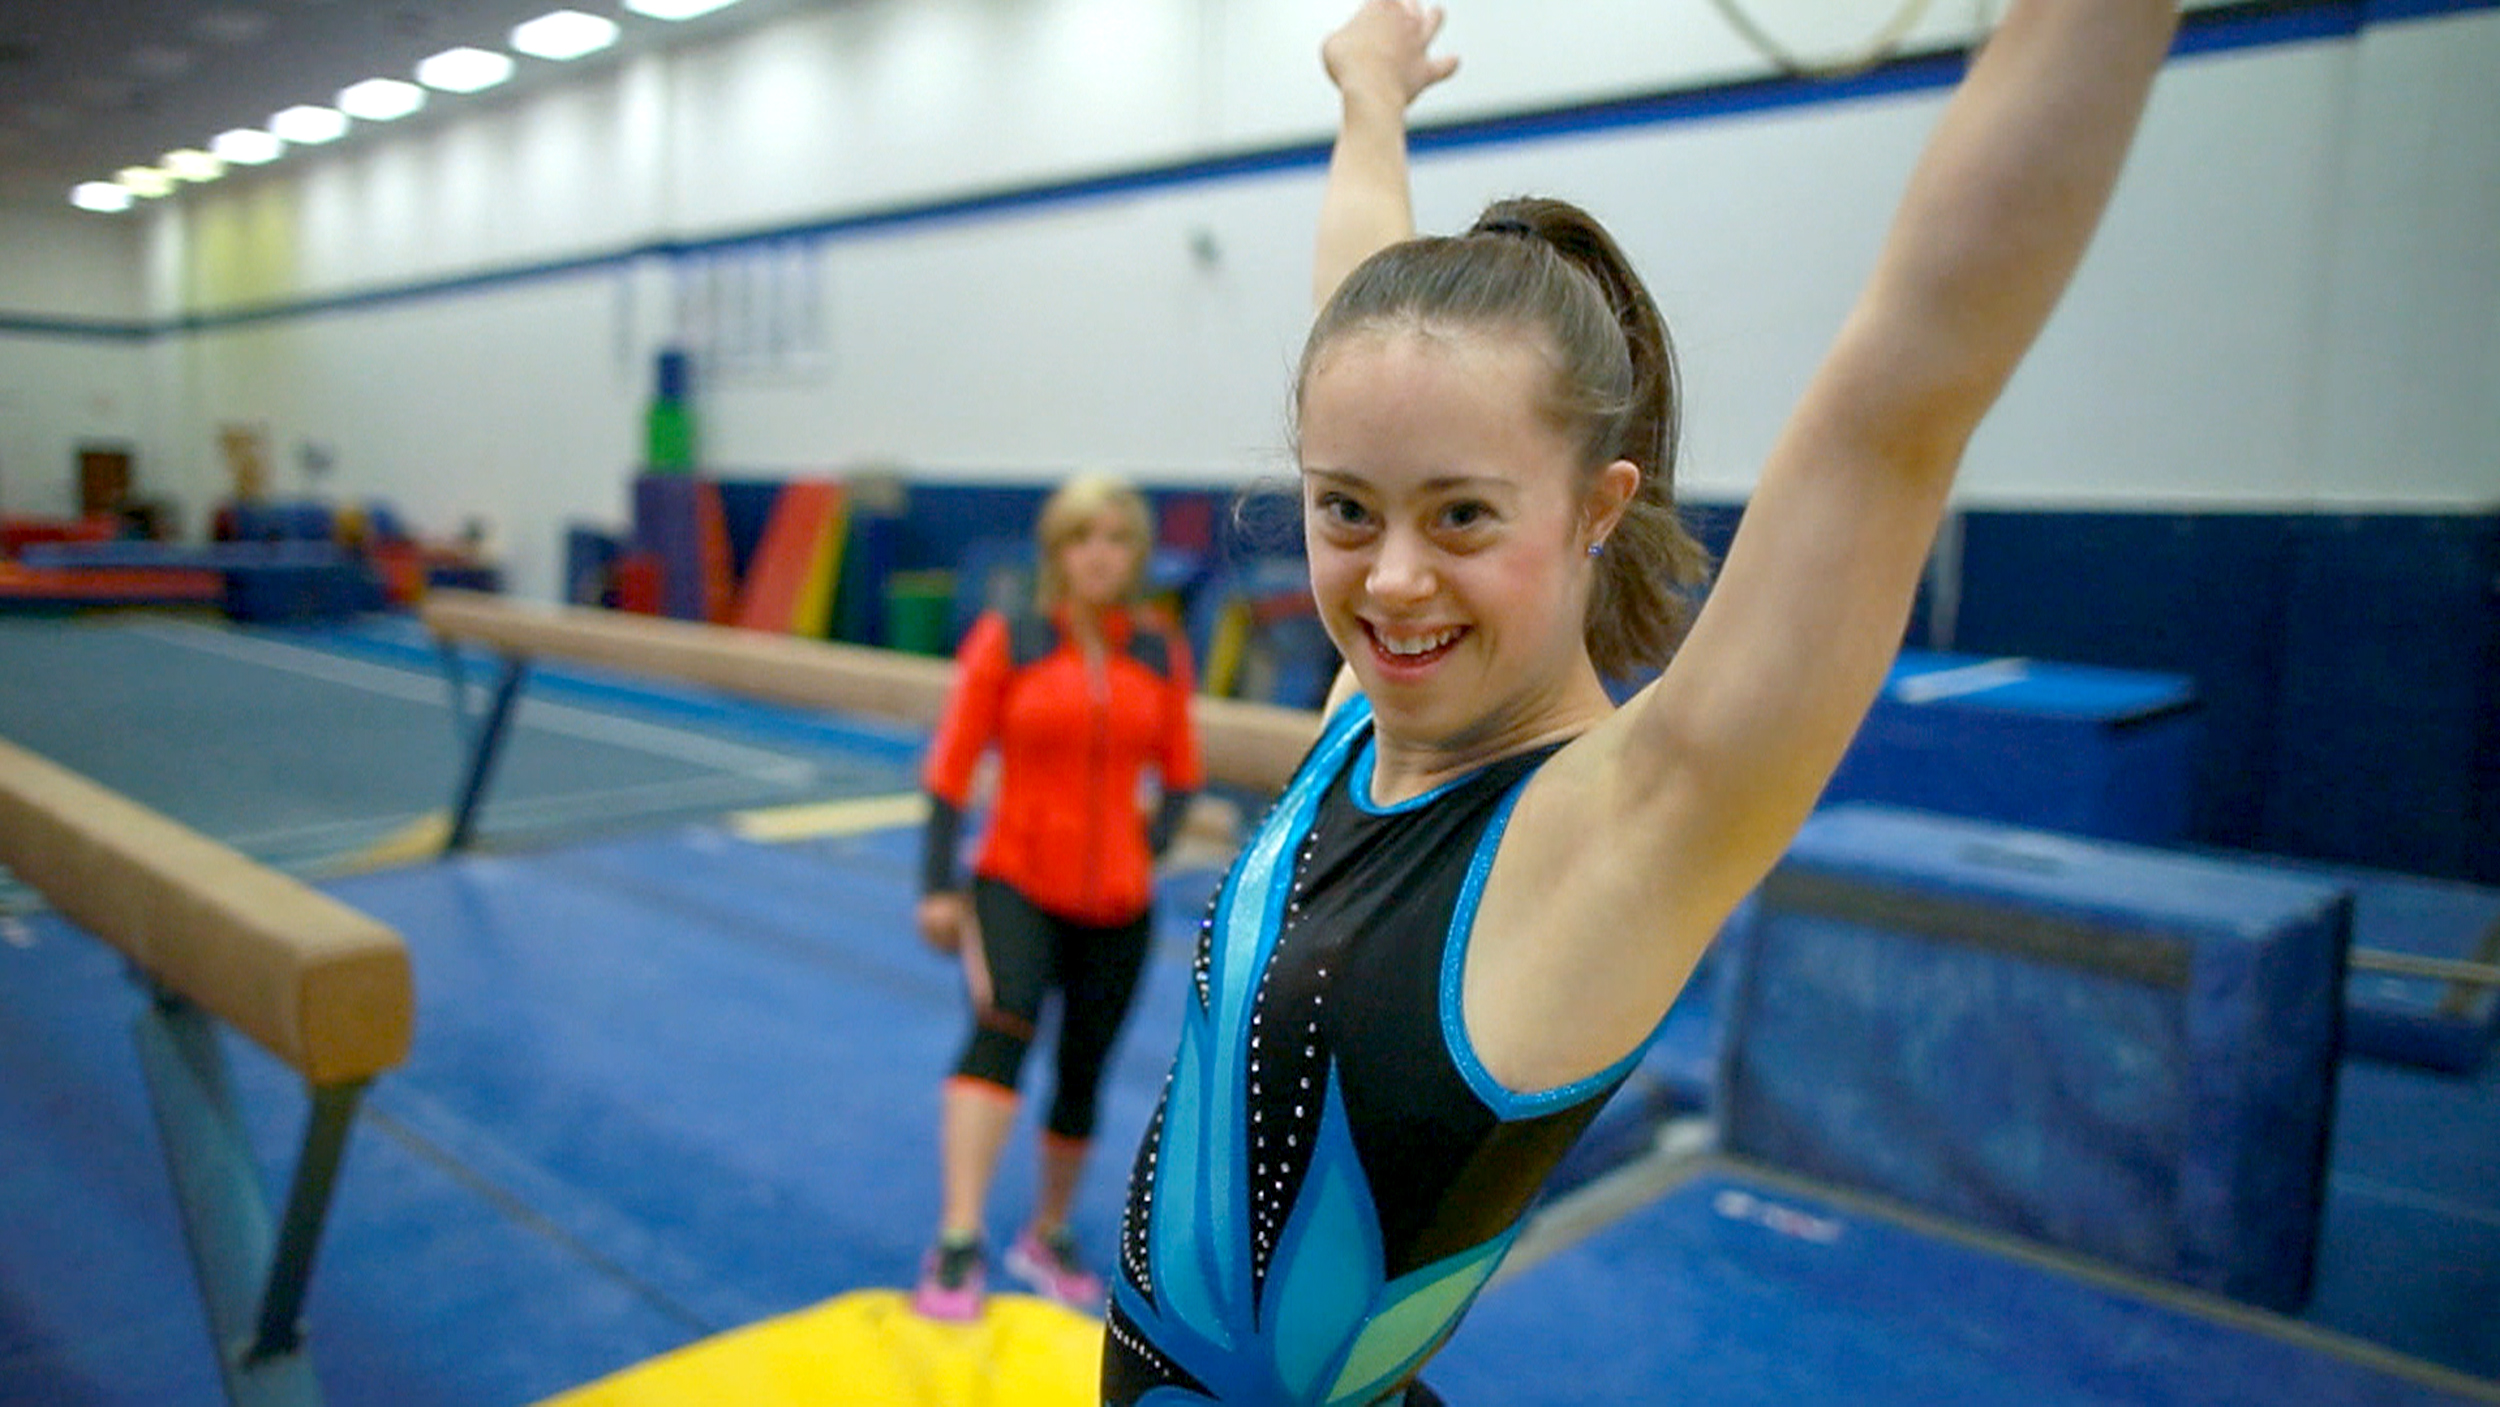 Champion Gymnast With Down Syndrome Overcomes Obstacles